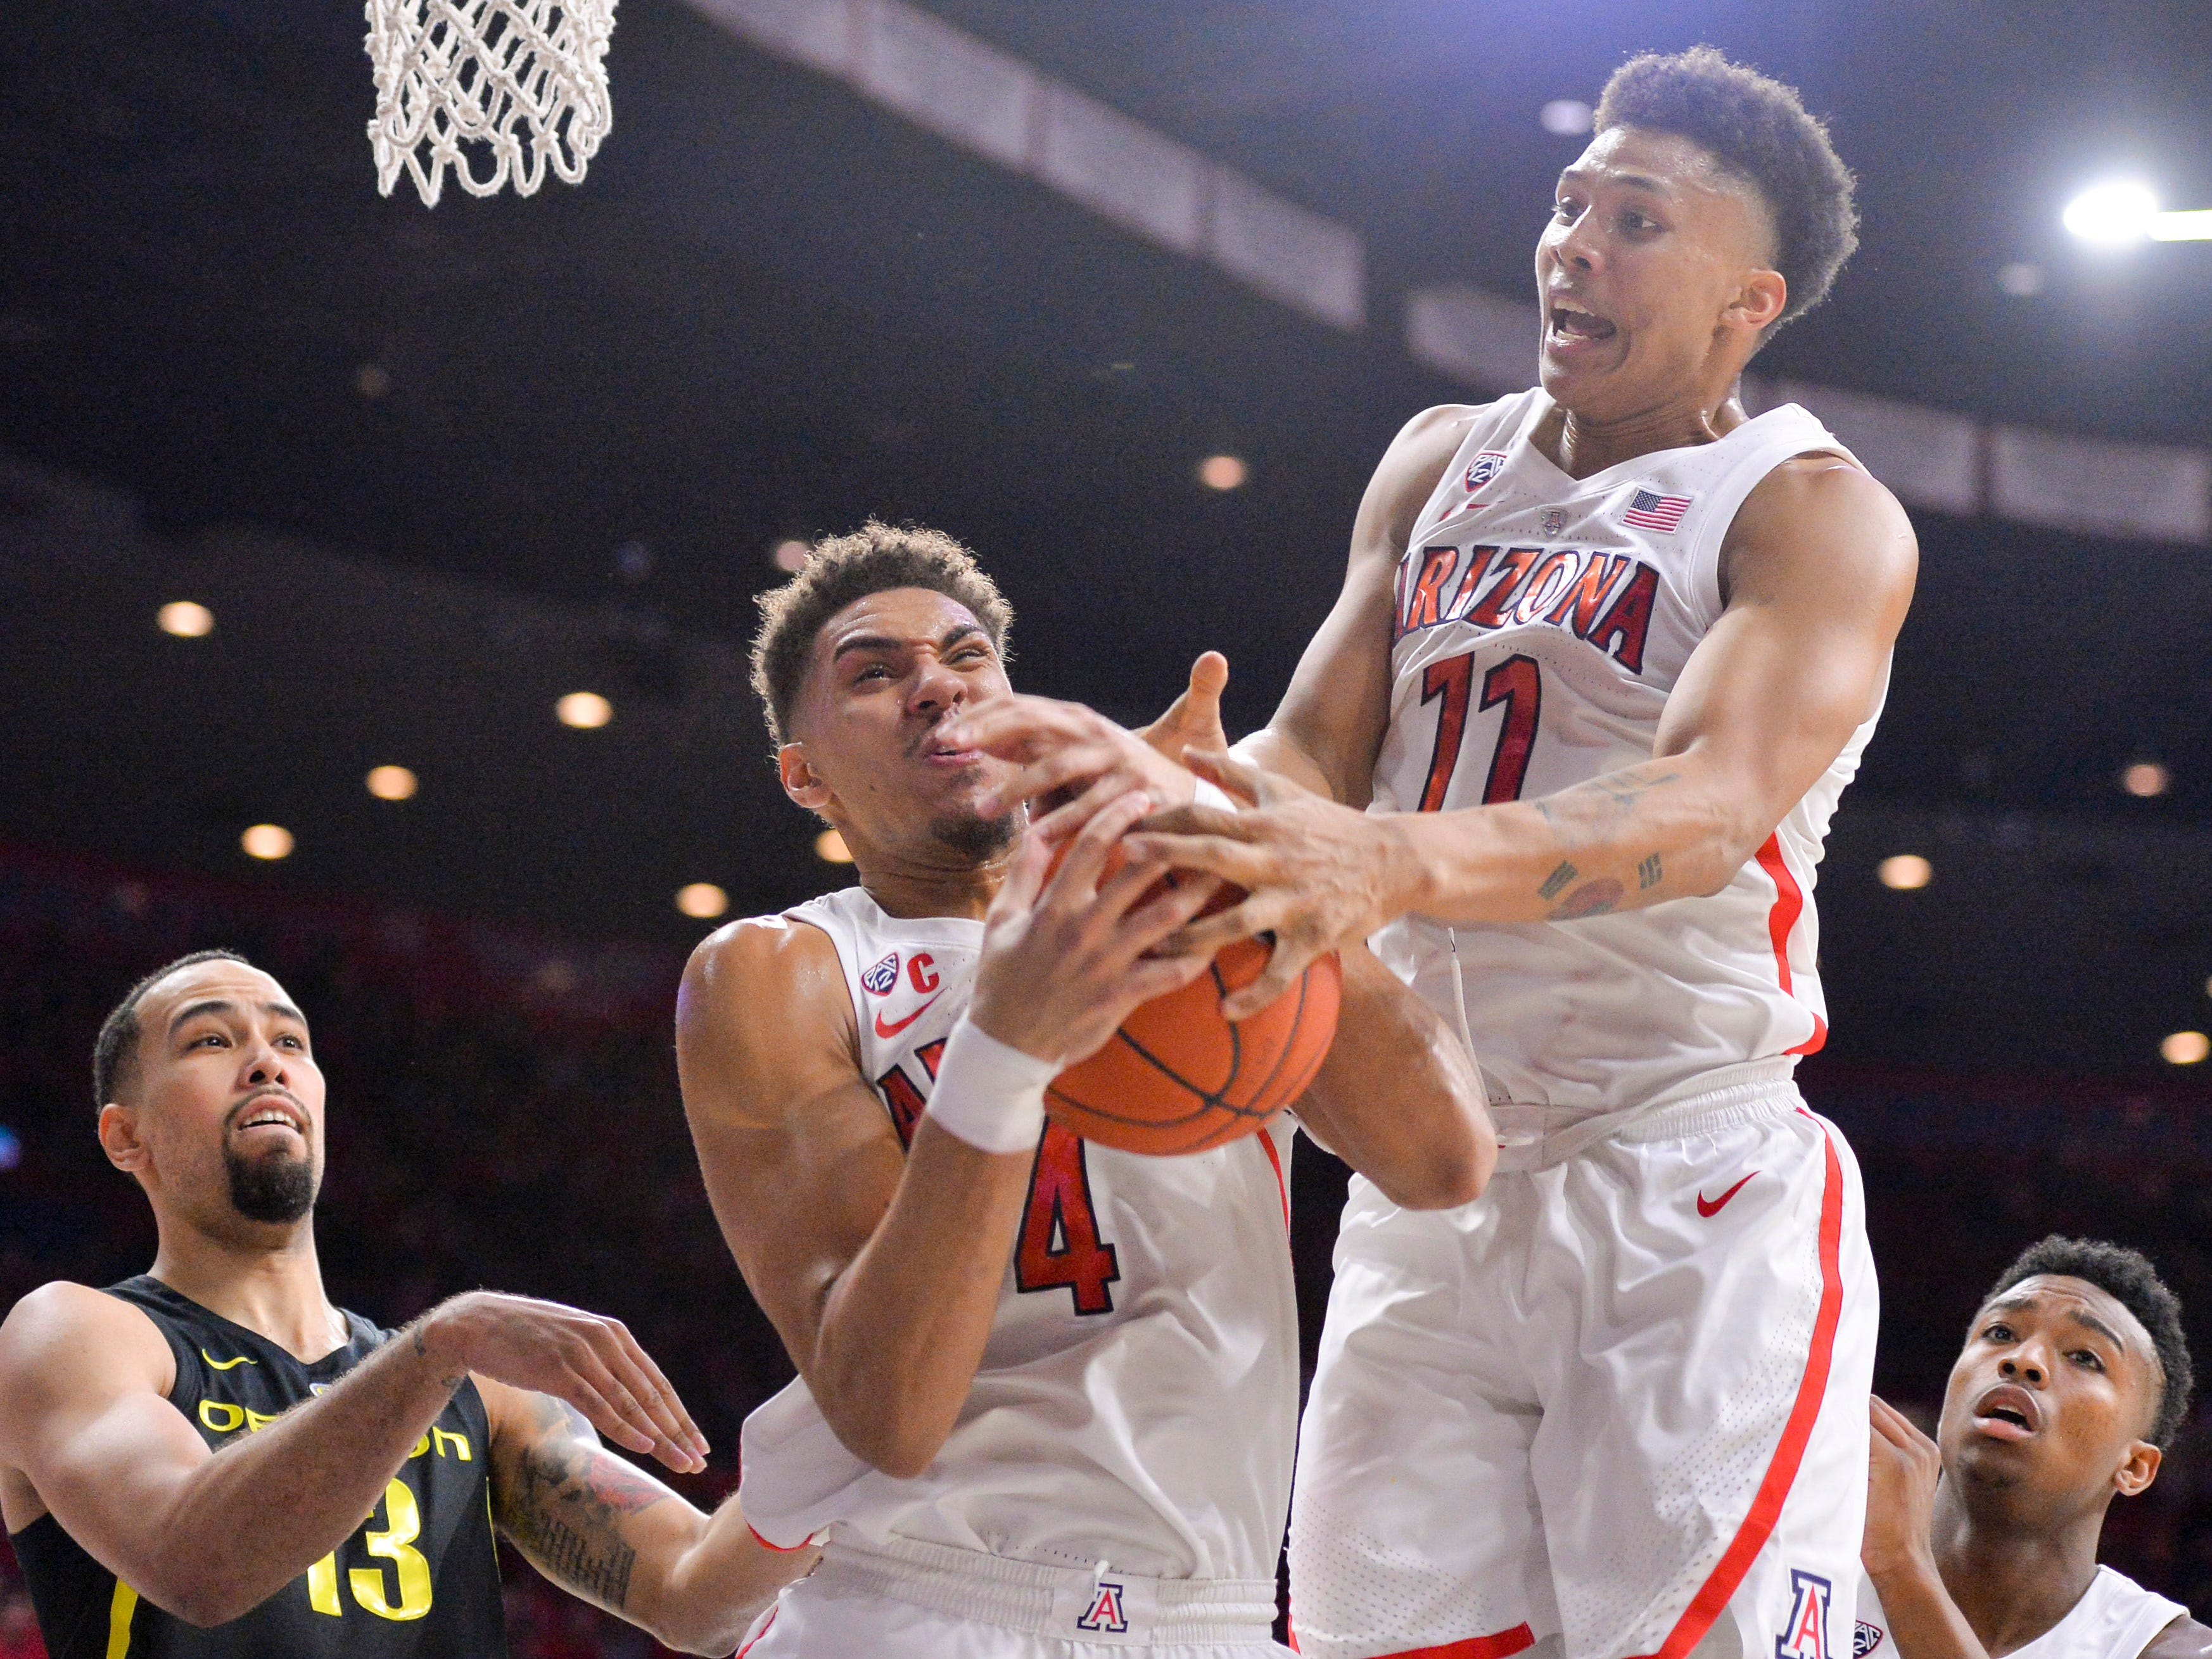 Jan 17, 2019; Tucson, AZ, USA; Arizona Wildcats center Chase Jeter (4) and Wildcats forward Ira Lee (11) battle for a rebound with Oregon Ducks forward Paul White (13) during the first half at McKale Center. Mandatory Credit: Casey Sapio-USA TODAY Sports